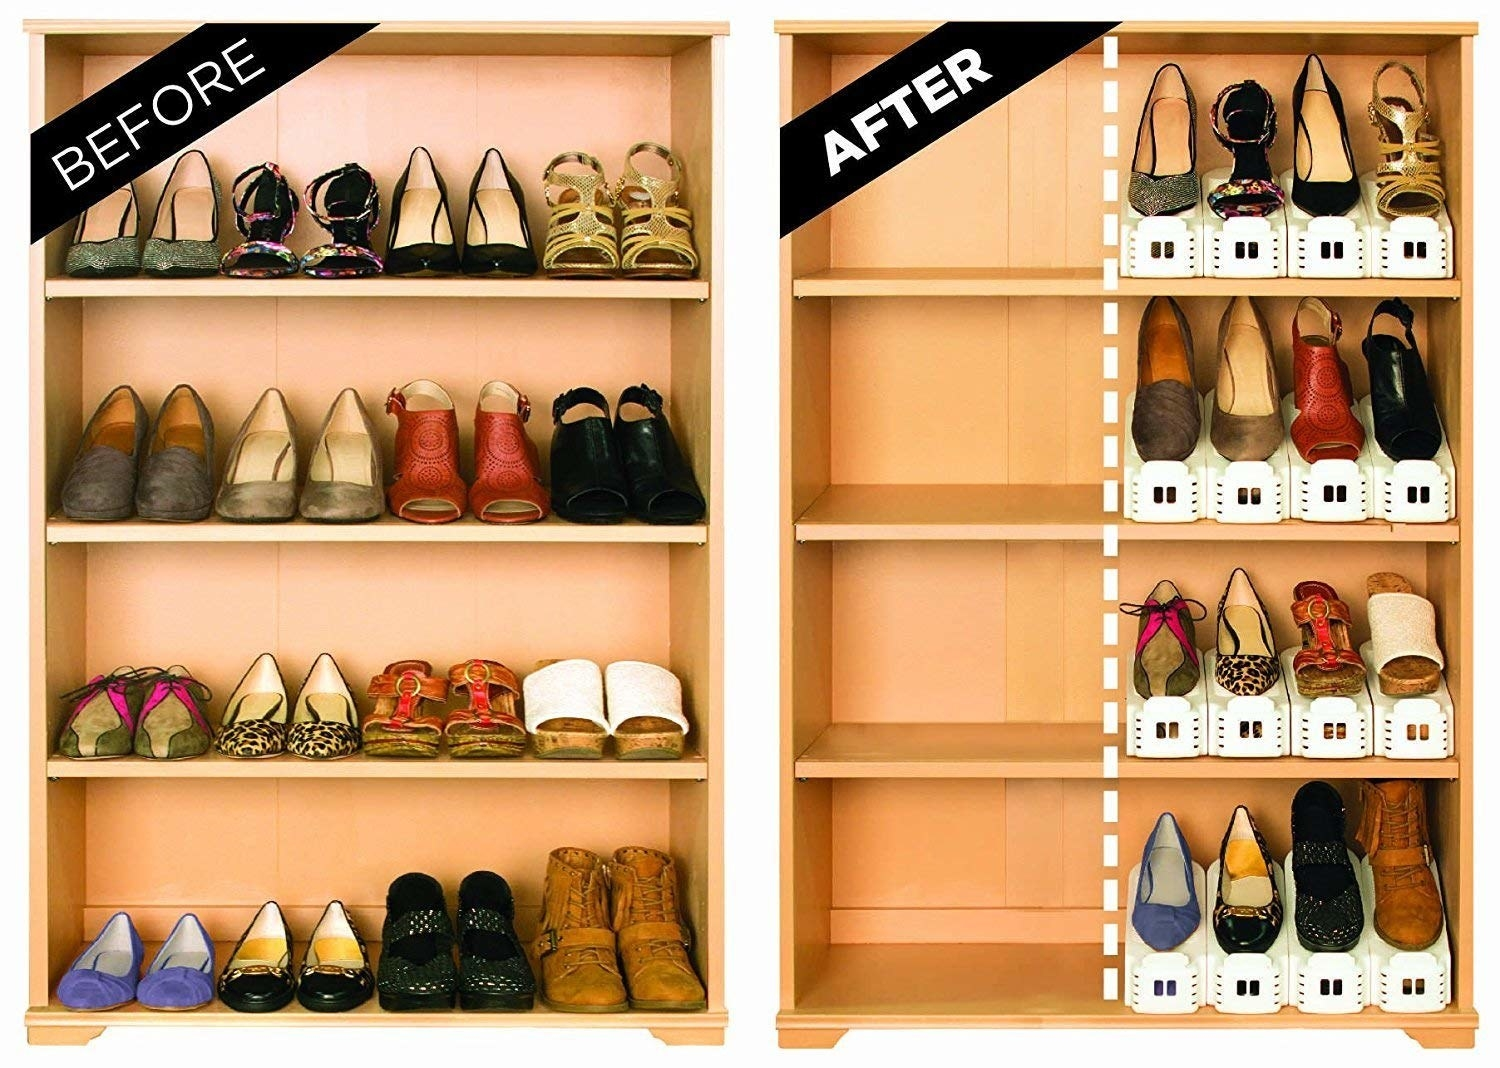 A before/after of shelves showing the shoes stacked on each other using the Shoe Slots, so the pairs take up half as much space